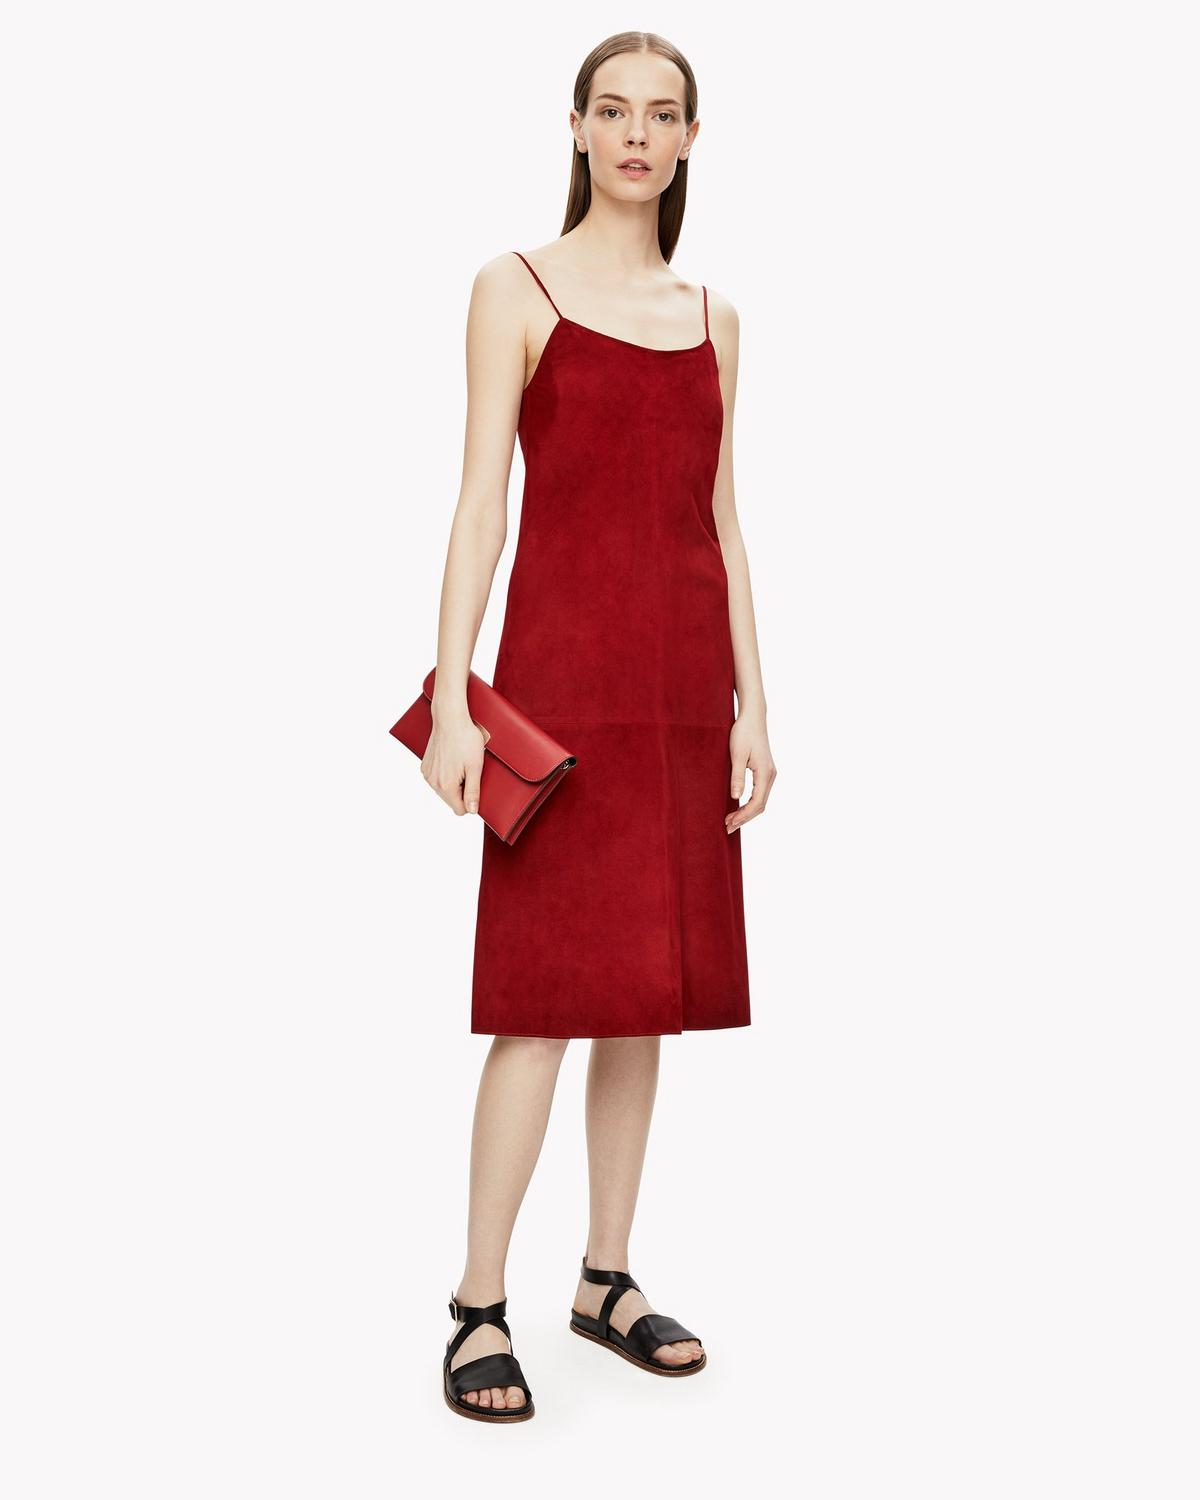 99e9869946b Theory Telson S Metises Suede Midi Dress, Red In Claret | ModeSens